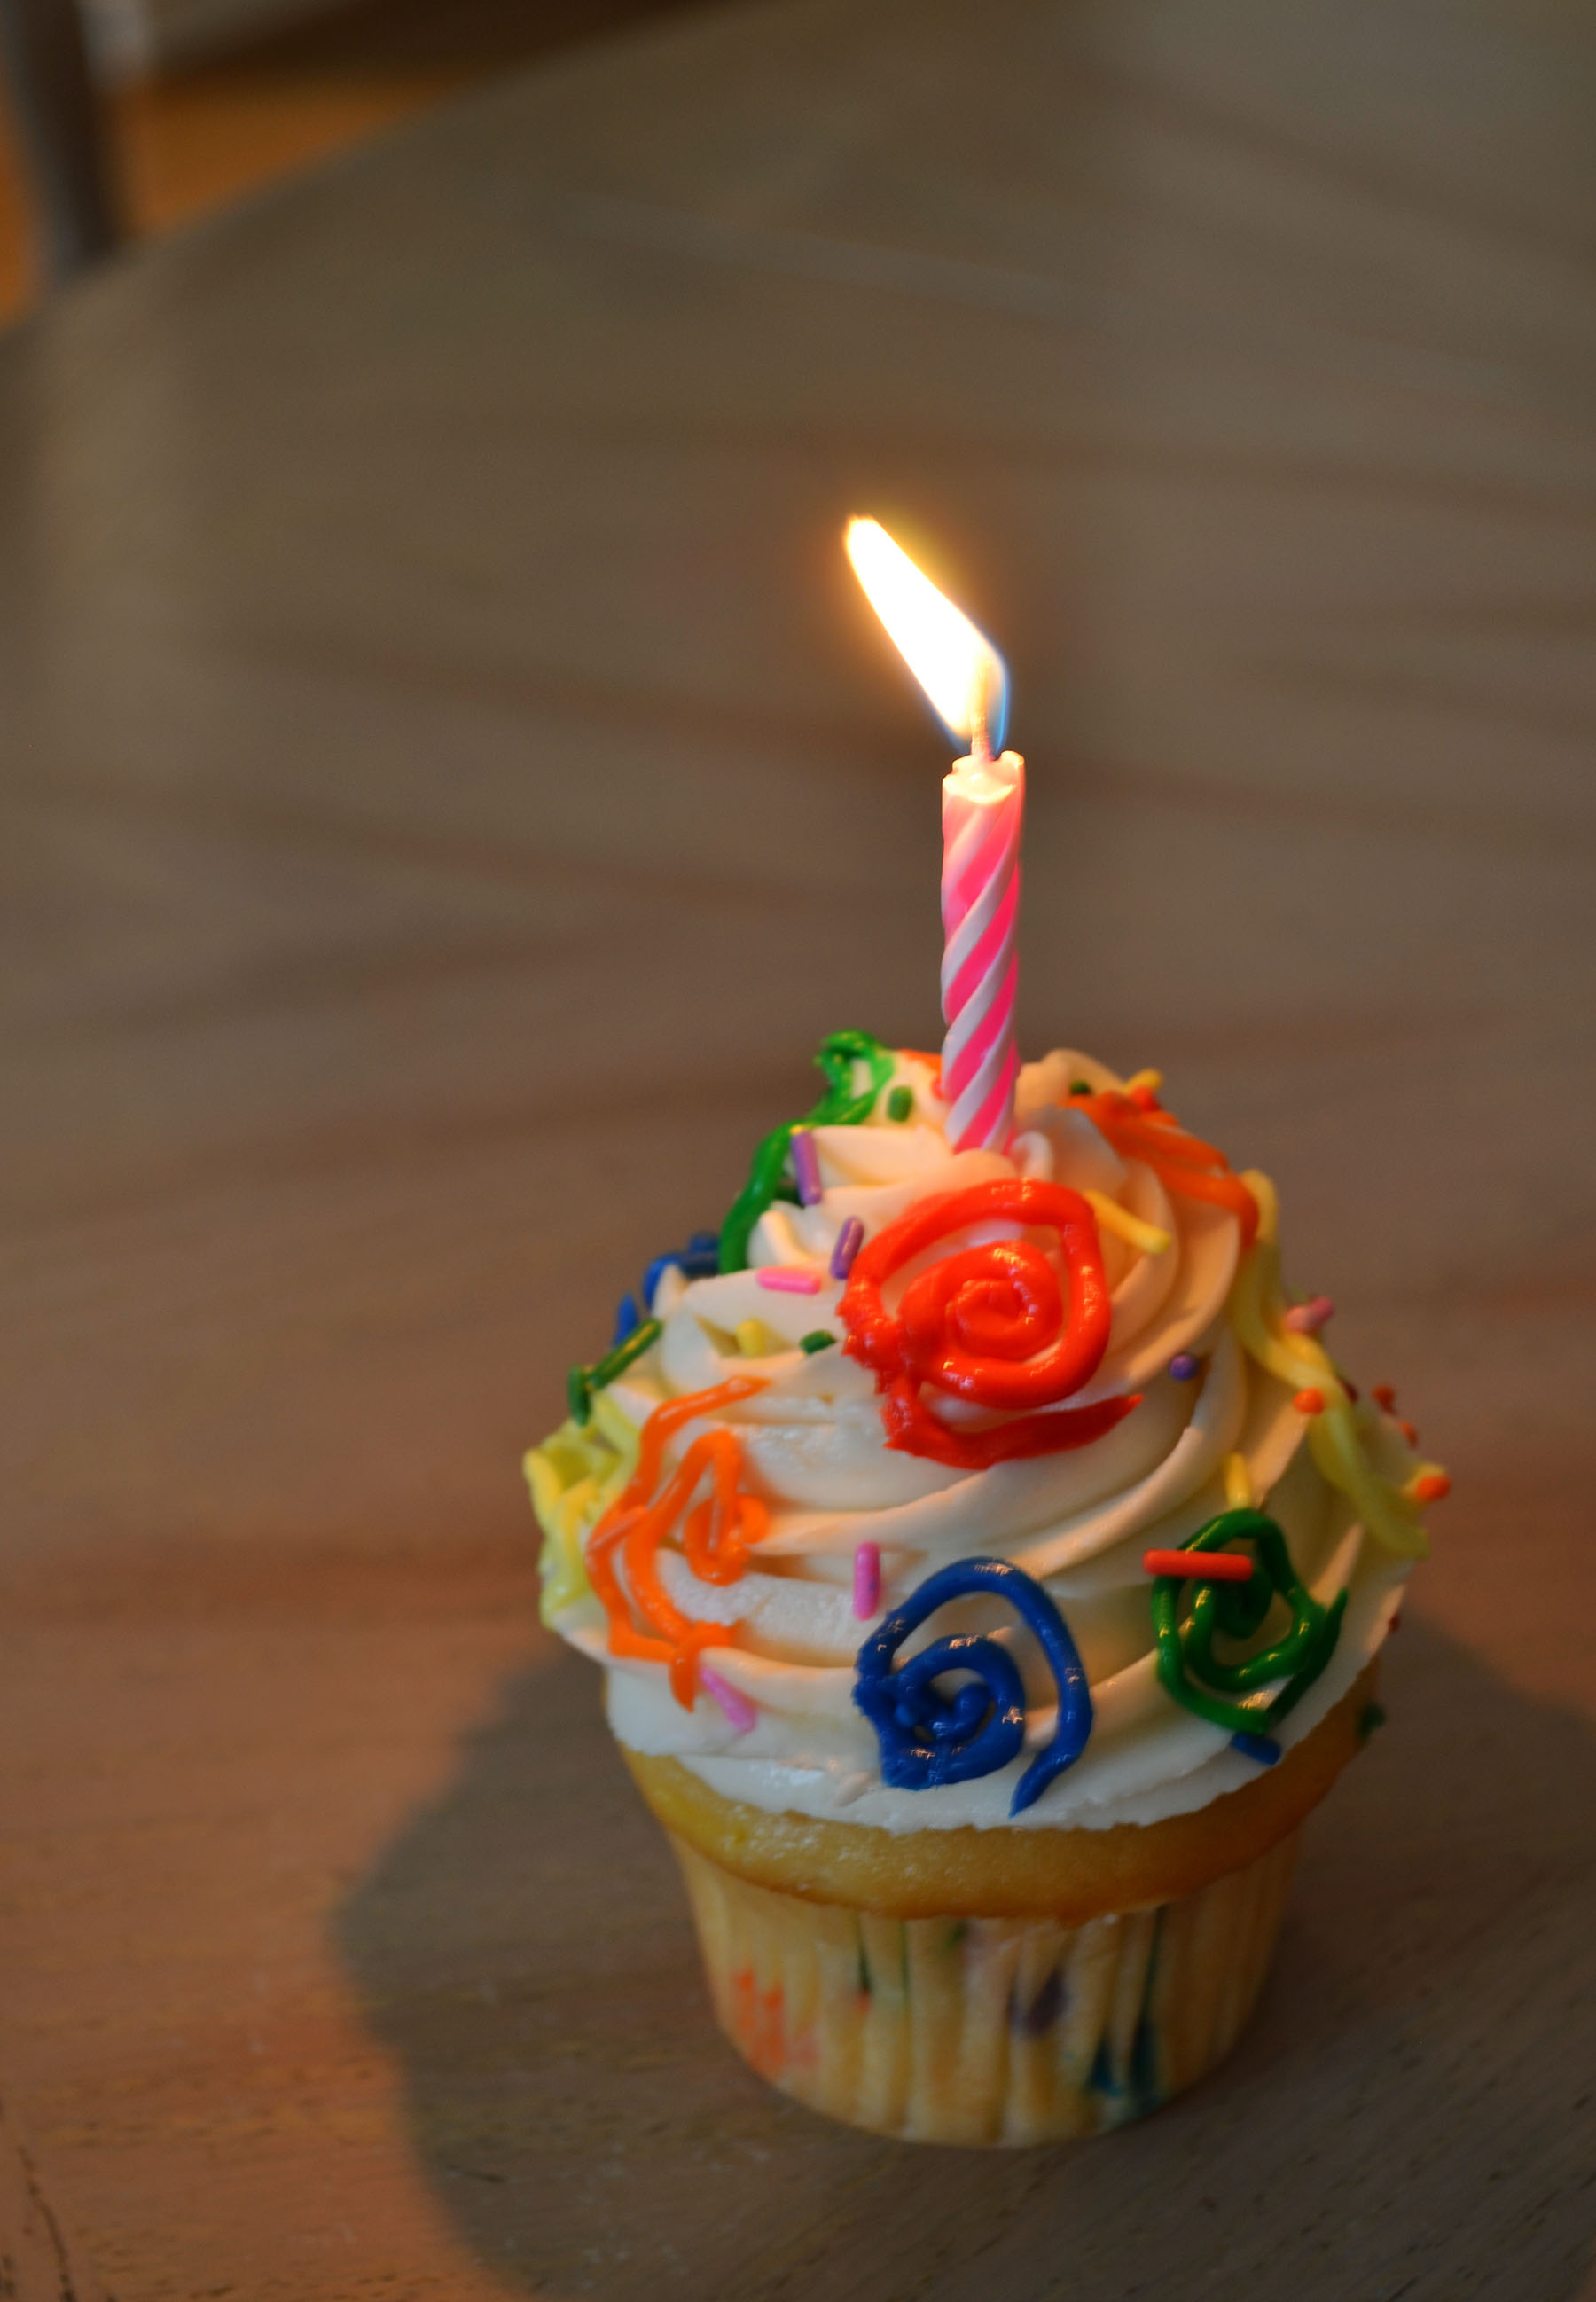 Happy 3rd Birthday to the Blog!